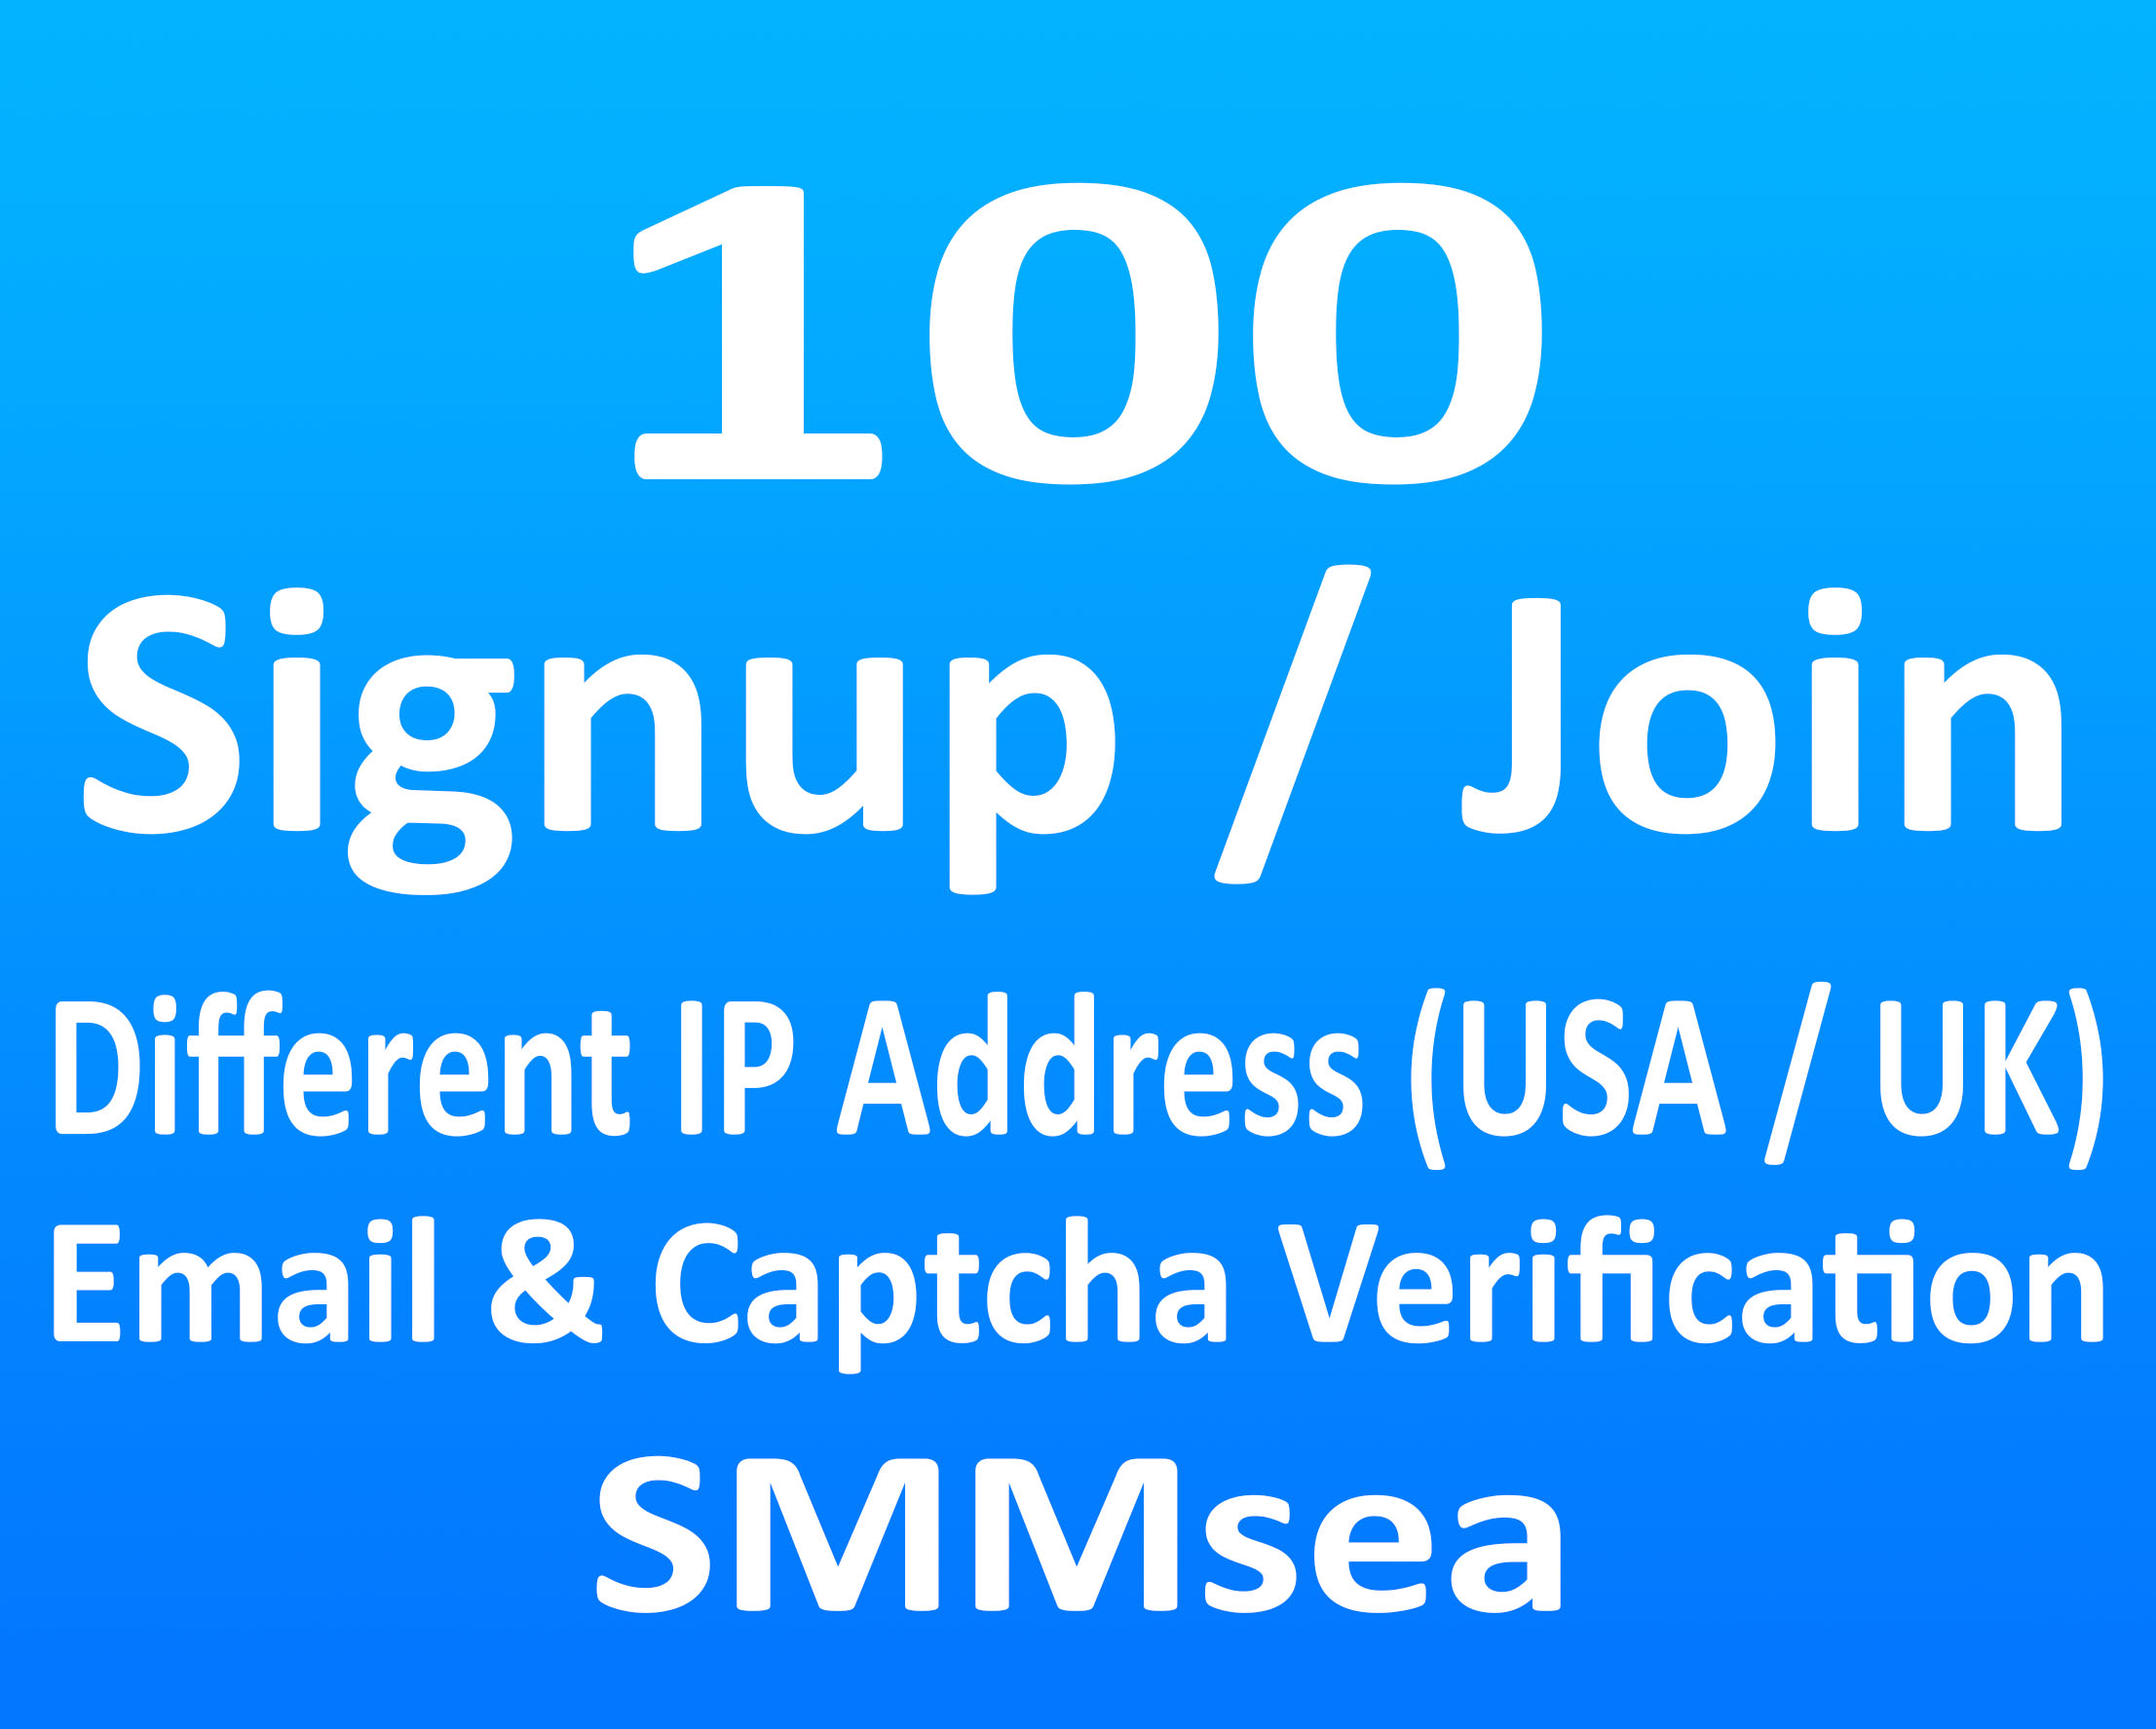 Give 100 Signup or Join for Any Website or Link with Different IP